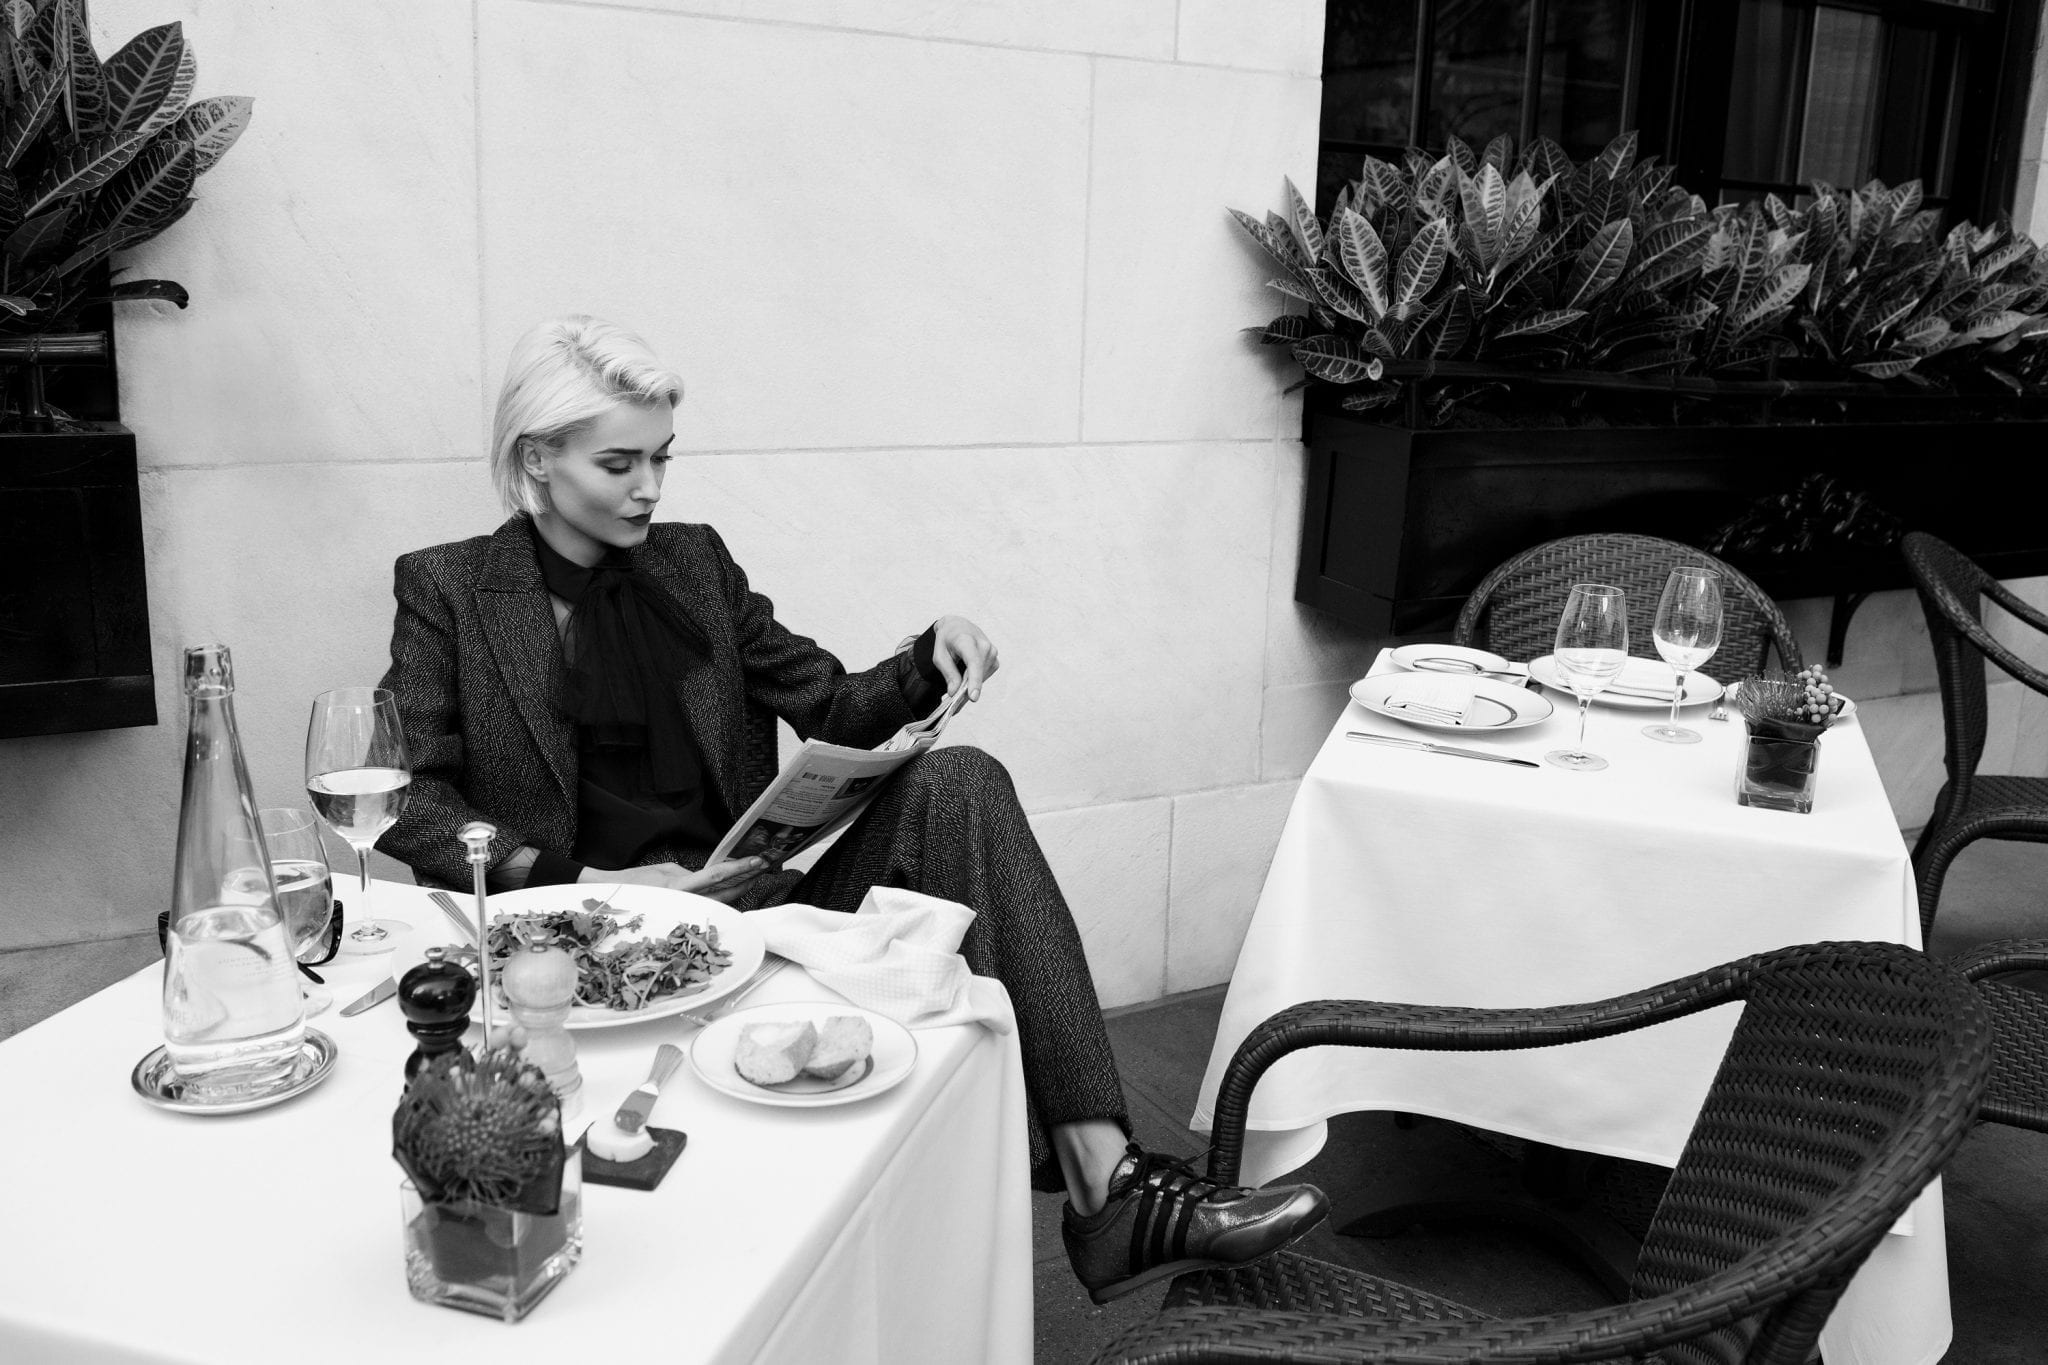 Classy patron enjoying a meal on Cafe Boulud's patio. Her head is cast down, reading her magazine. A meal, along with a side plate of dinner rolls has been placed at her table. A glass is filled with white wine. Amy Hanna Marketing, 2014